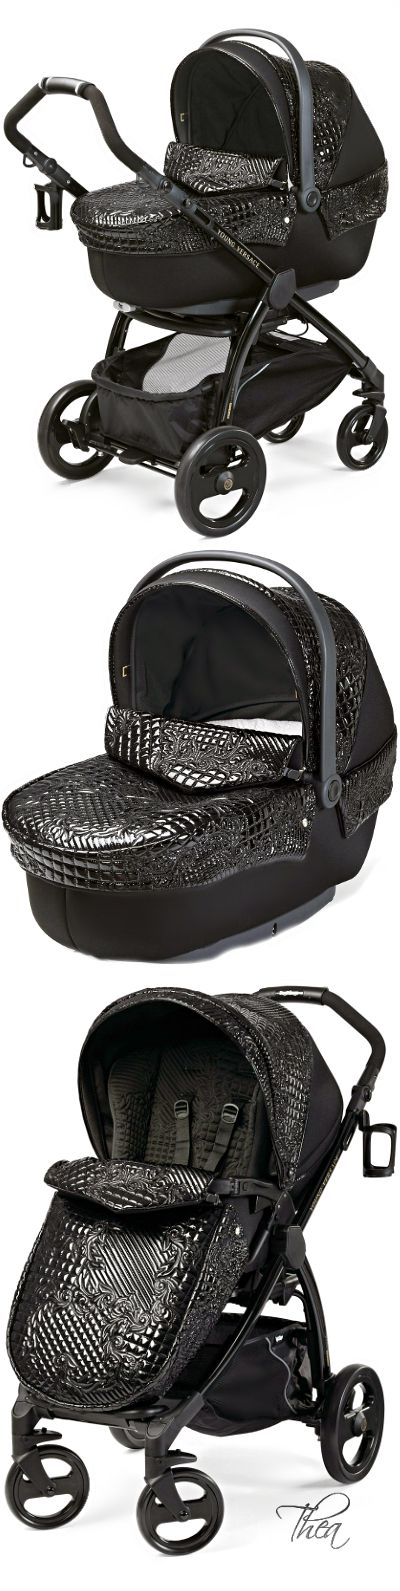 Young Versace ○ Black Stroller and Travel Set   Baby dreams   Baby ... 7c73b8cf20a